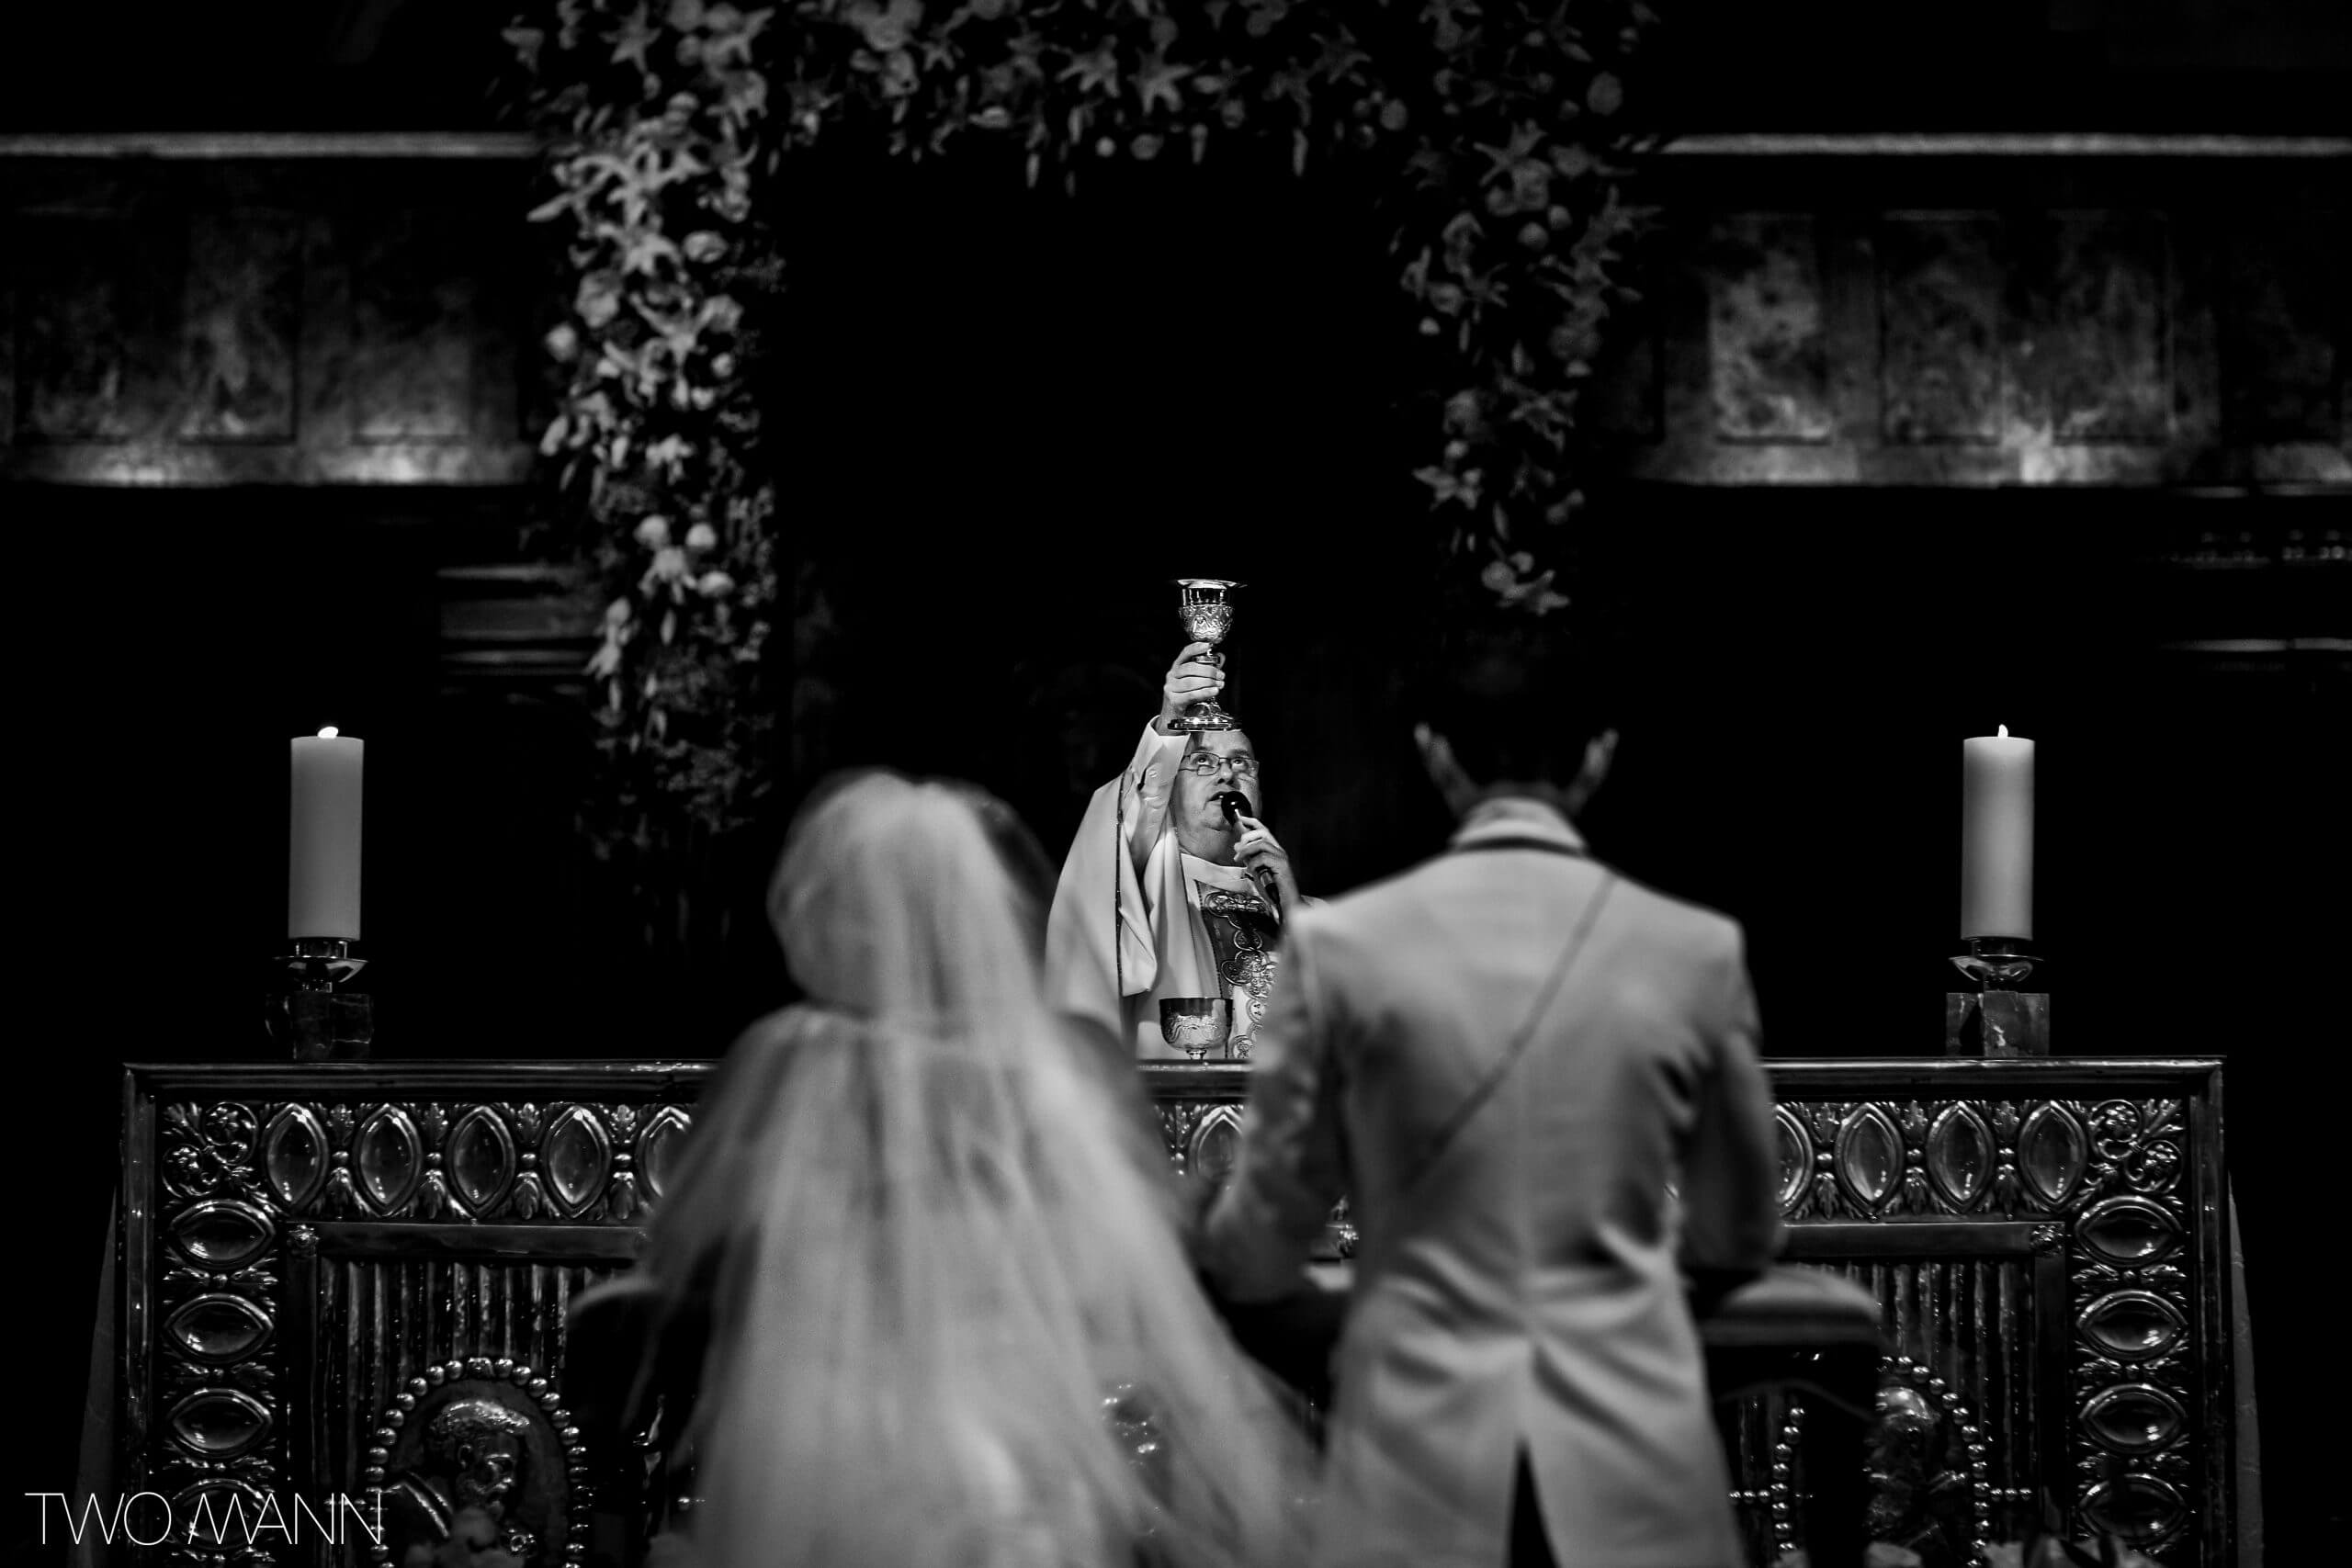 bride and groom pray at wedding ceremony in a church